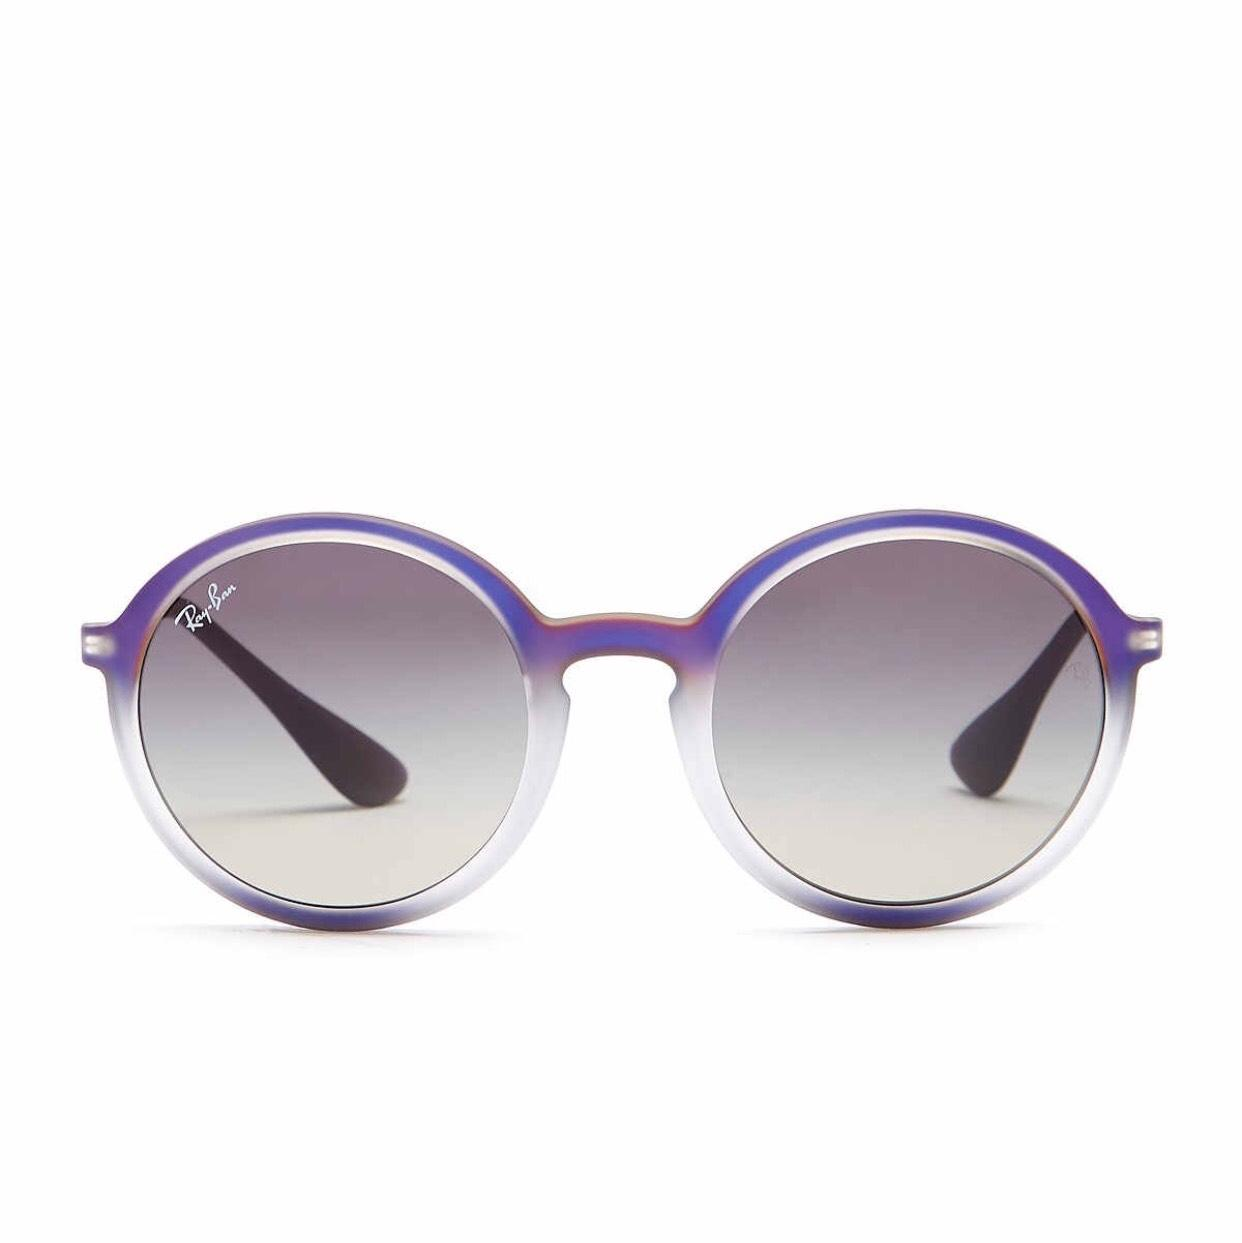 sunglasses on sale ray ban  Ray-Ban Sunglasses \u0026 Accessories on Sale - Up to 80% off at Tradesy